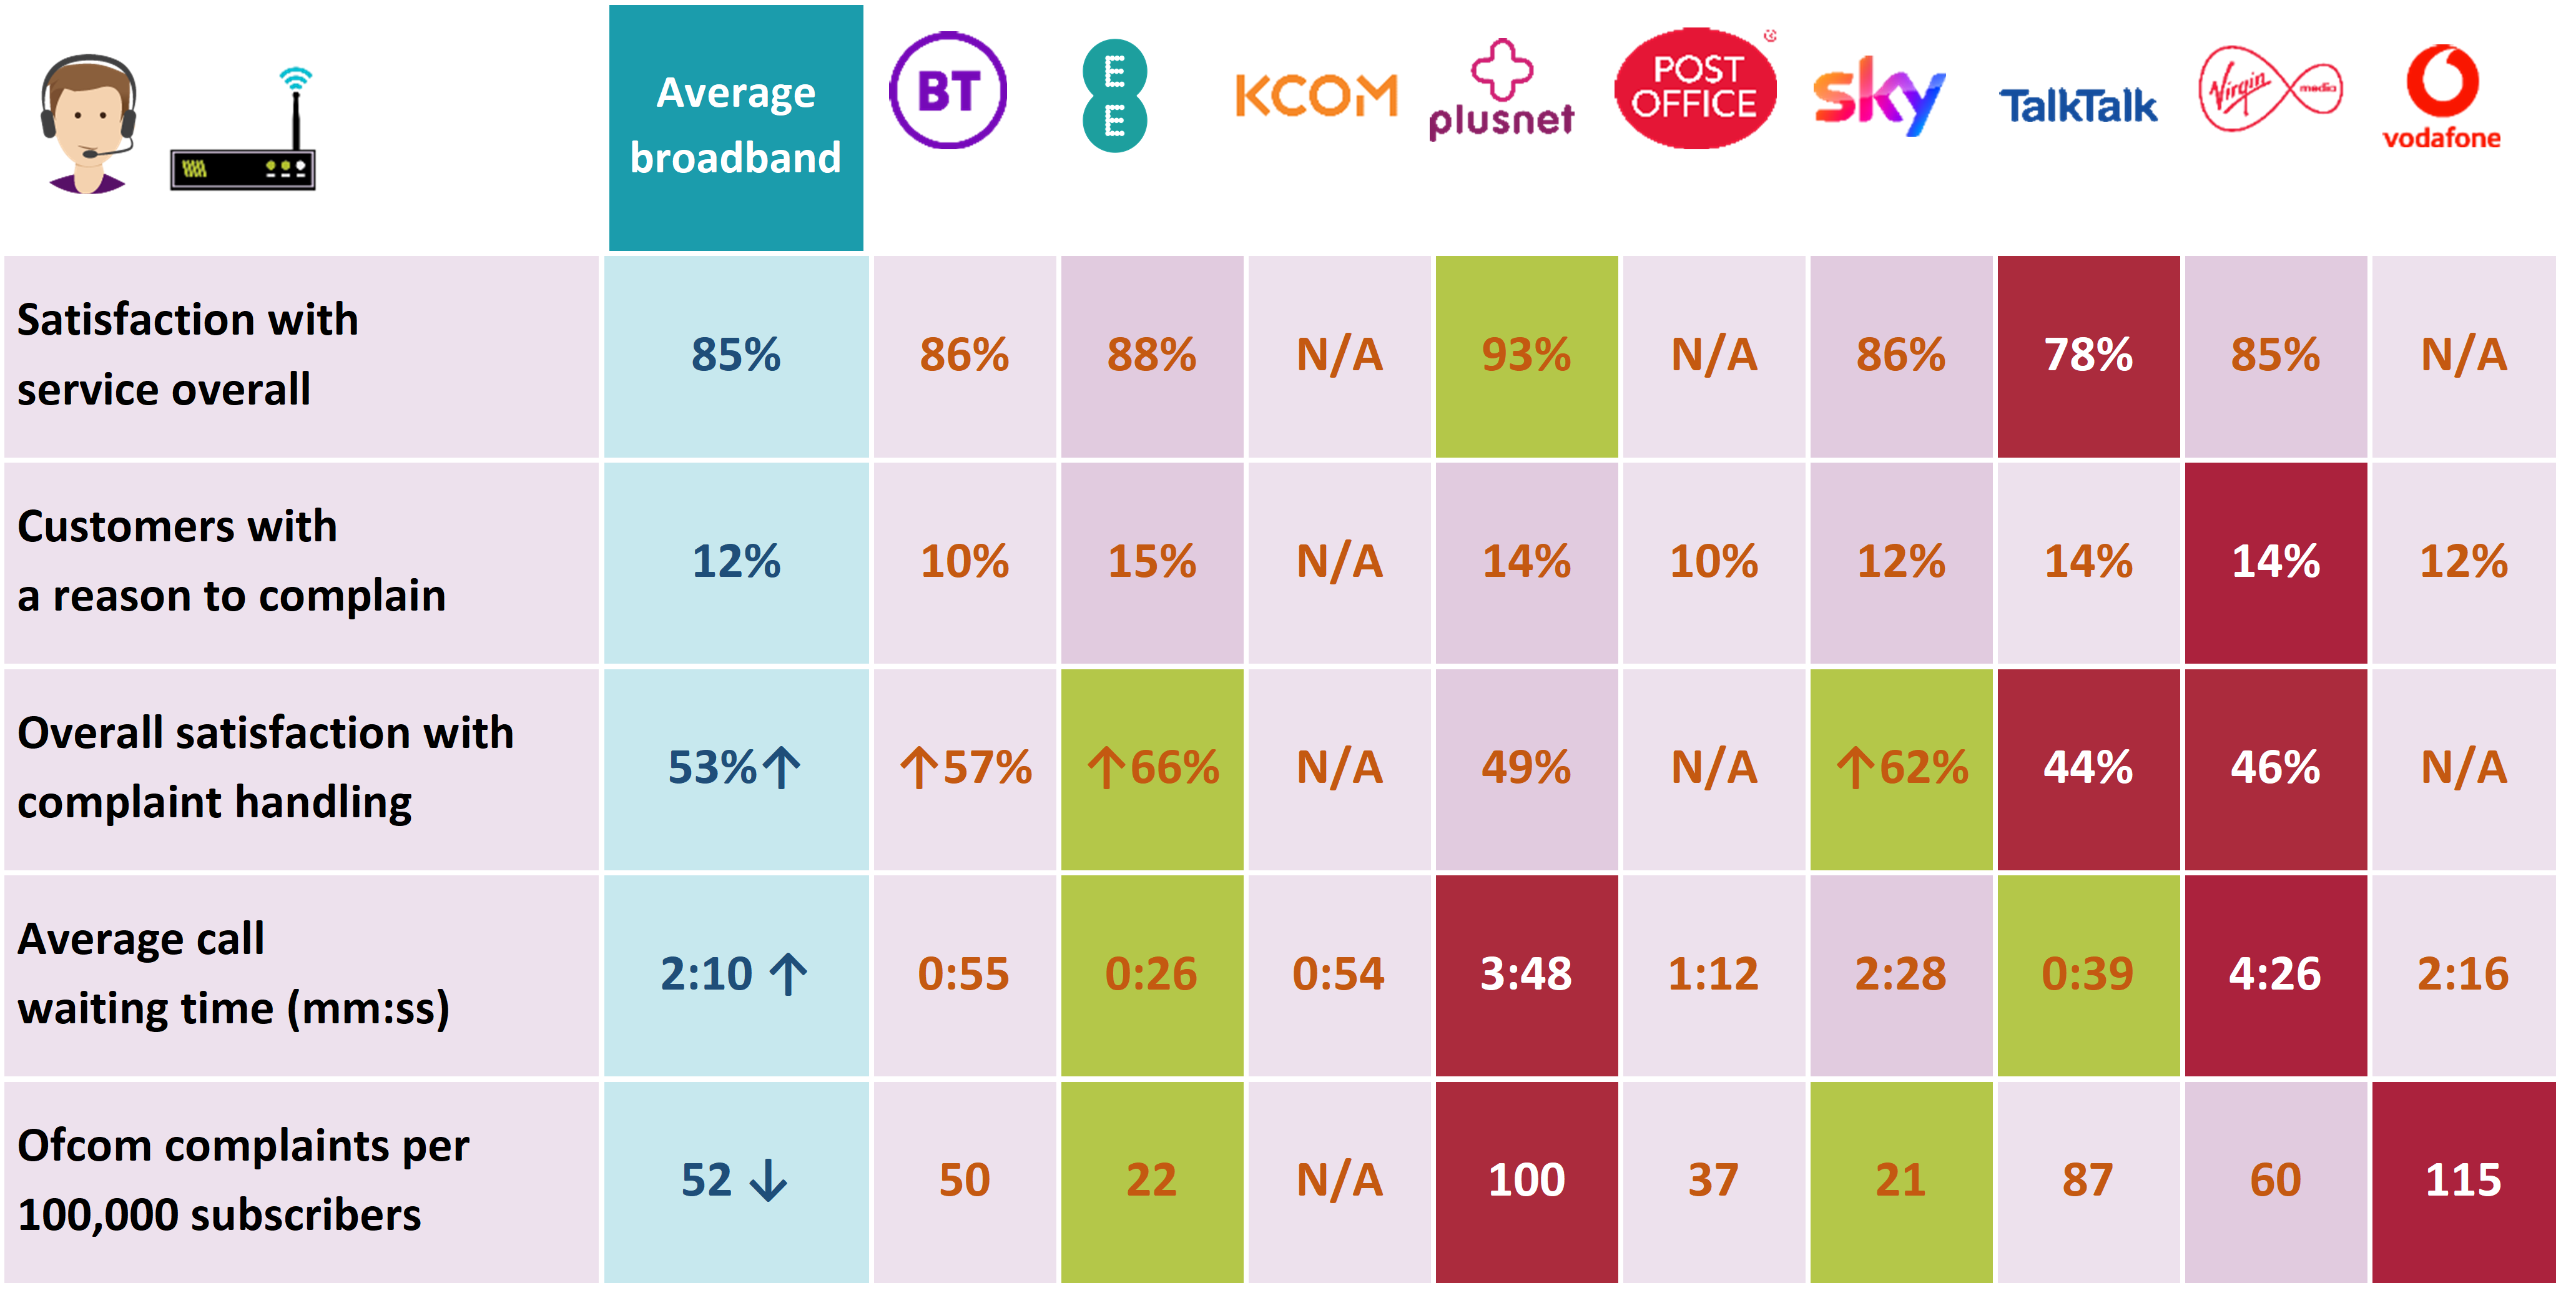 This table summarises the performance of each provider on five metrics: satisfaction with overall service, customers with a reason to complain, overall satisfaction with complaint handling, average call waiting time and complaints per 100,000 subscribers. A fully accessible version of the table is included in the Executive Summary of the report.